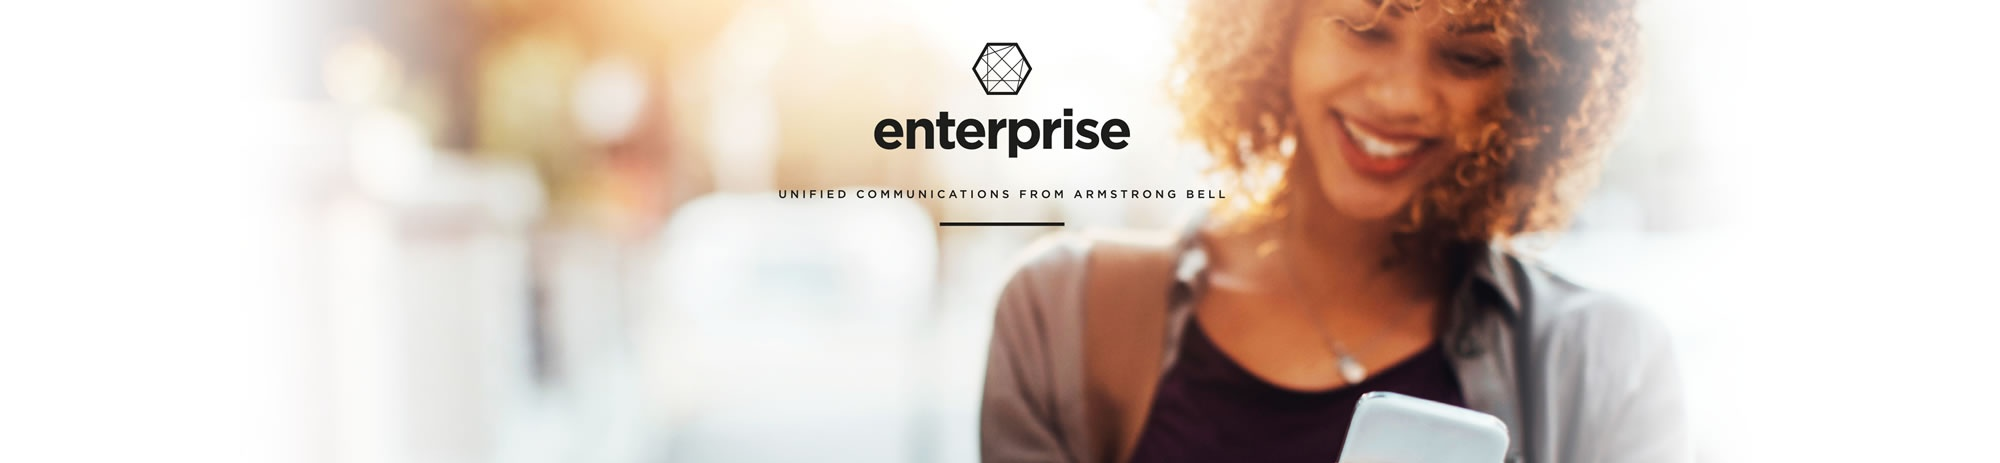 Enterprise - Unified Communications from Armstrong Bell